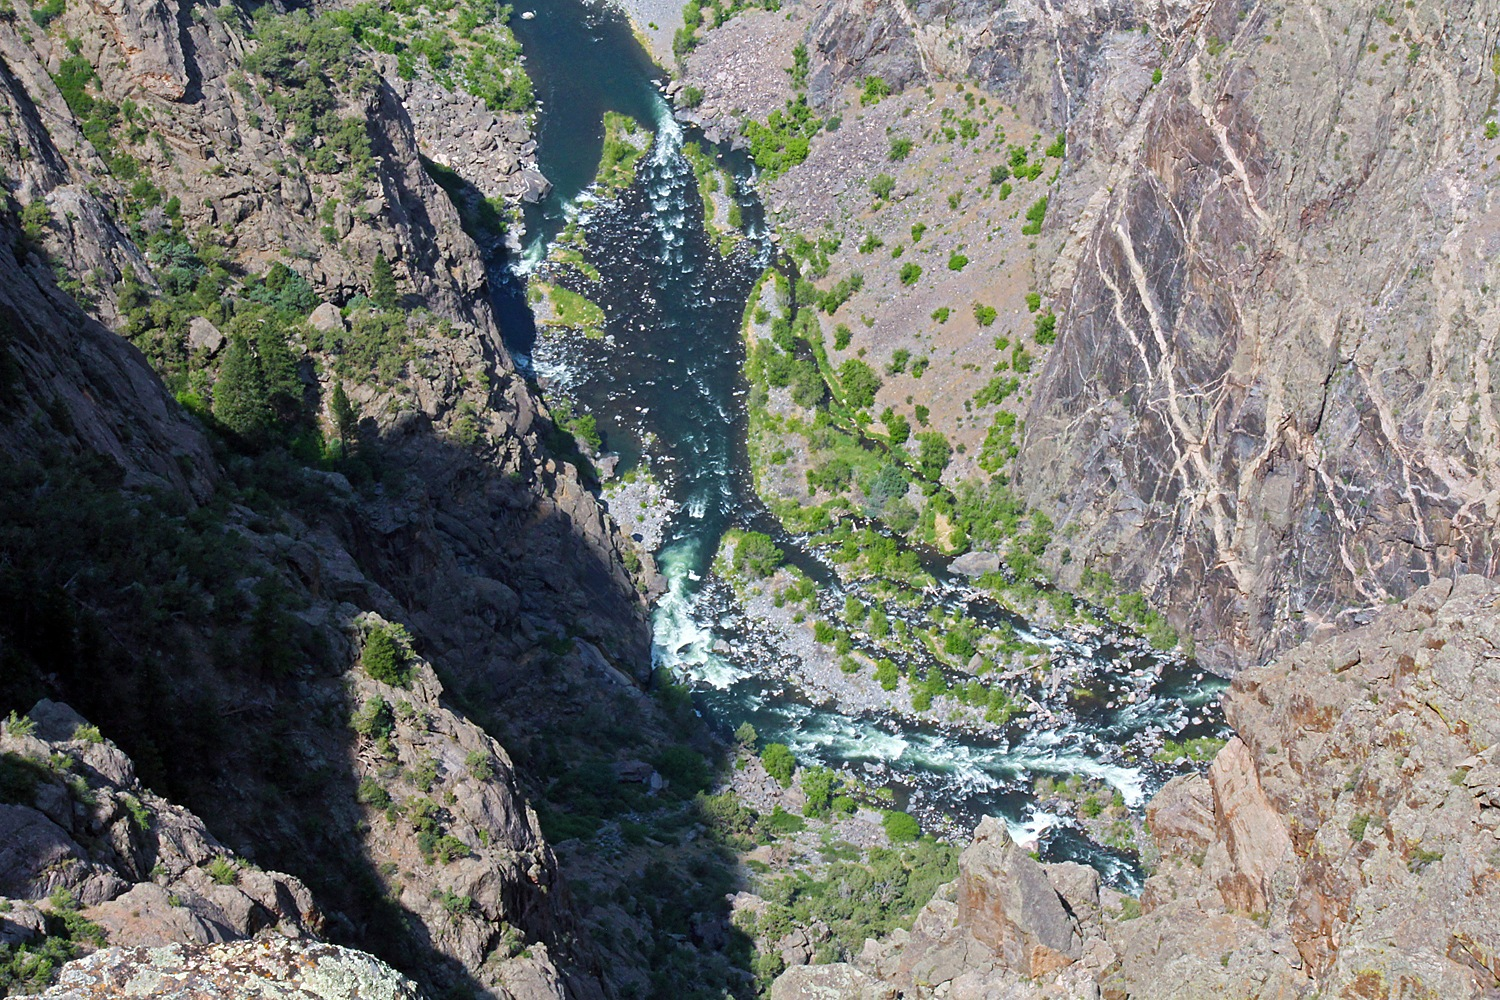 Black Canyon of the Gunnison by Carl Main